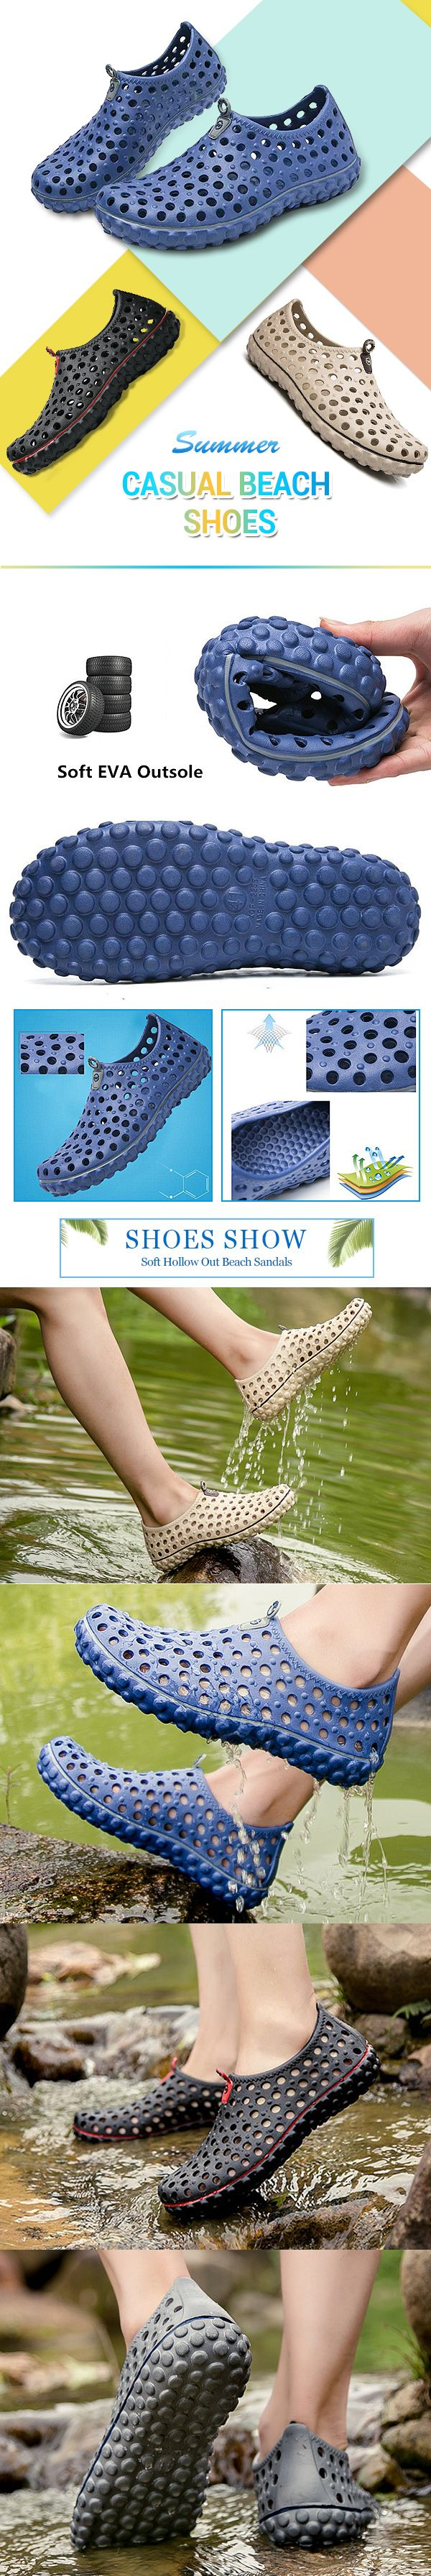 Men Soft Hollow Out Beach Sandals Outdoor Garden Shoes Casual Water Shoes